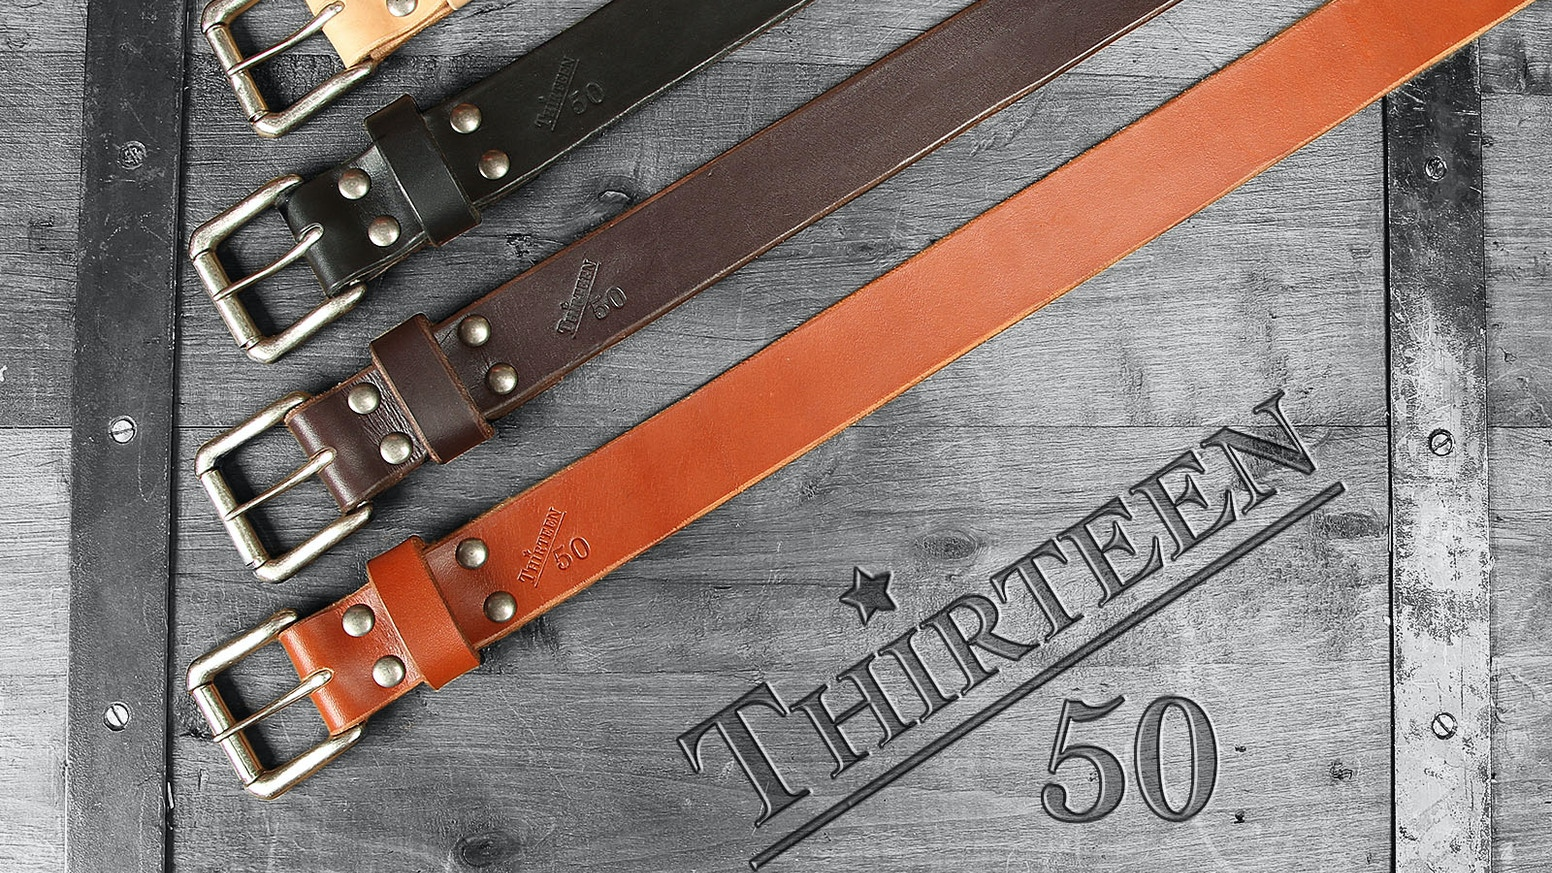 An American made, full grain leather belt to last a lifetime. Cheers to the last belt you will ever purchase!